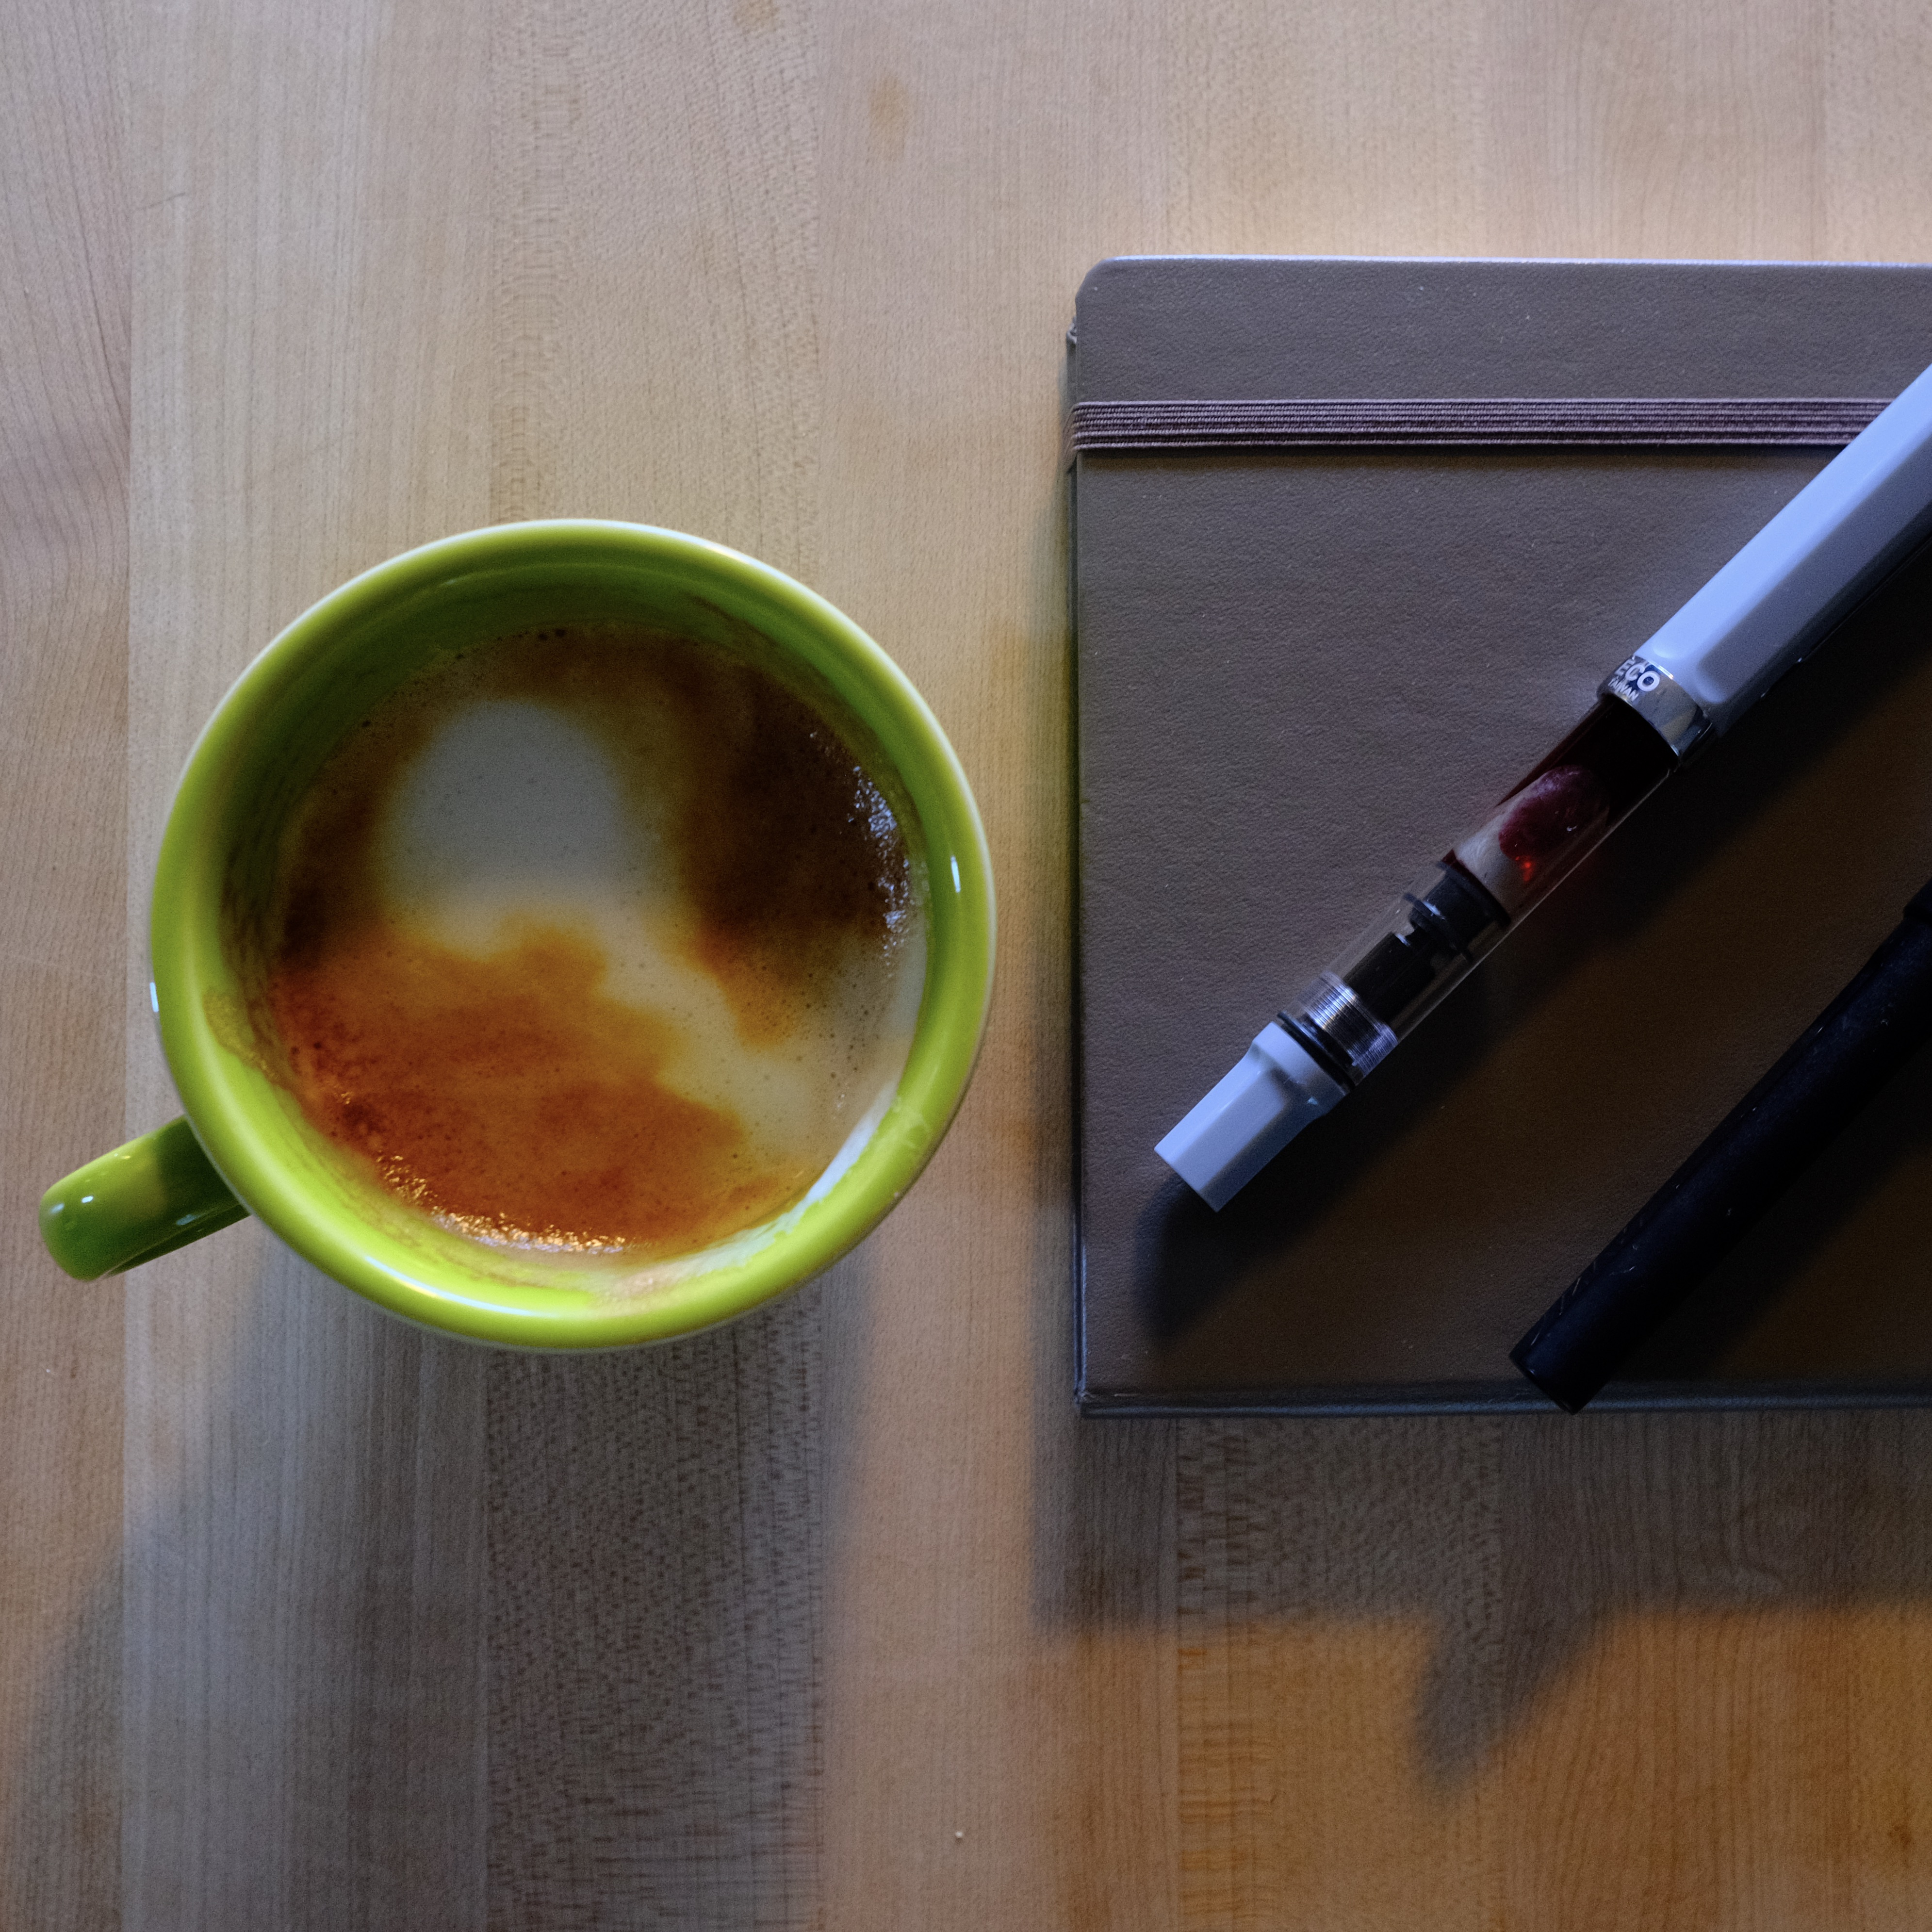 top-down photo of a cappuccino in a green mug, next to a brown notebook and ECO fountain pen with bright orange ink